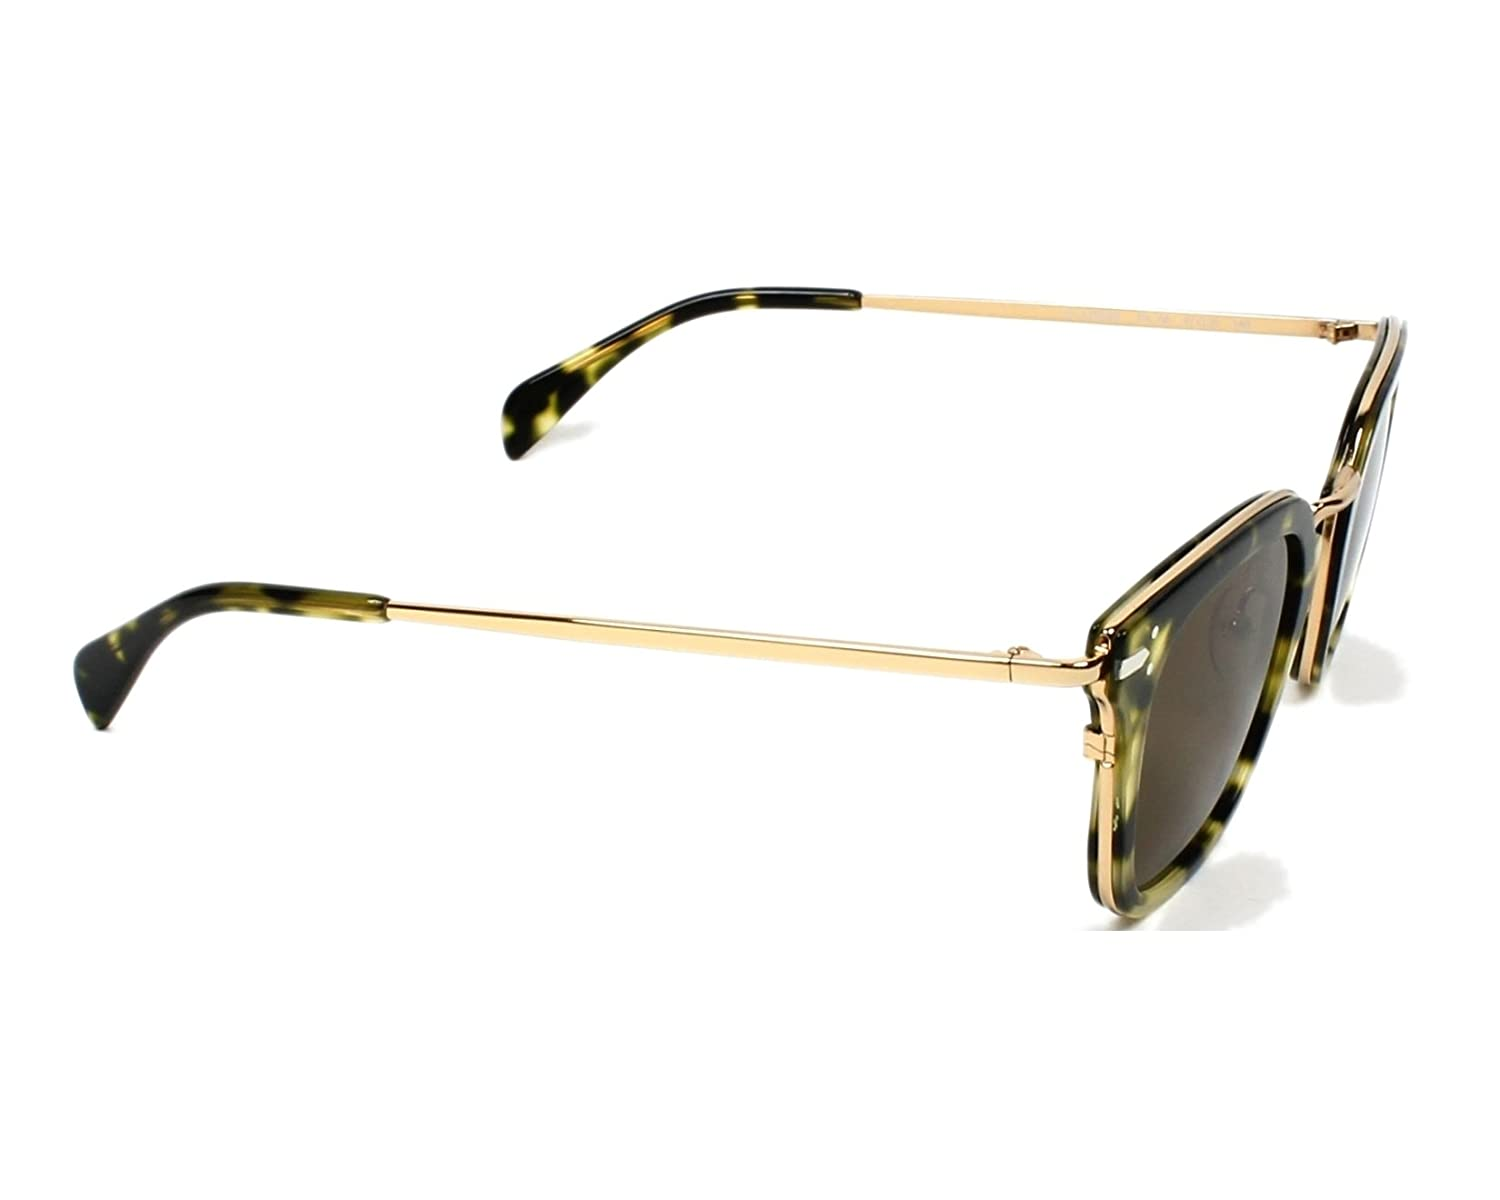 e2c7f99672 Amazon.com  Celine 41402S J1LA6 Black Gold Print 41402S Square Sunglasses  Lens Category  Celine  Clothing